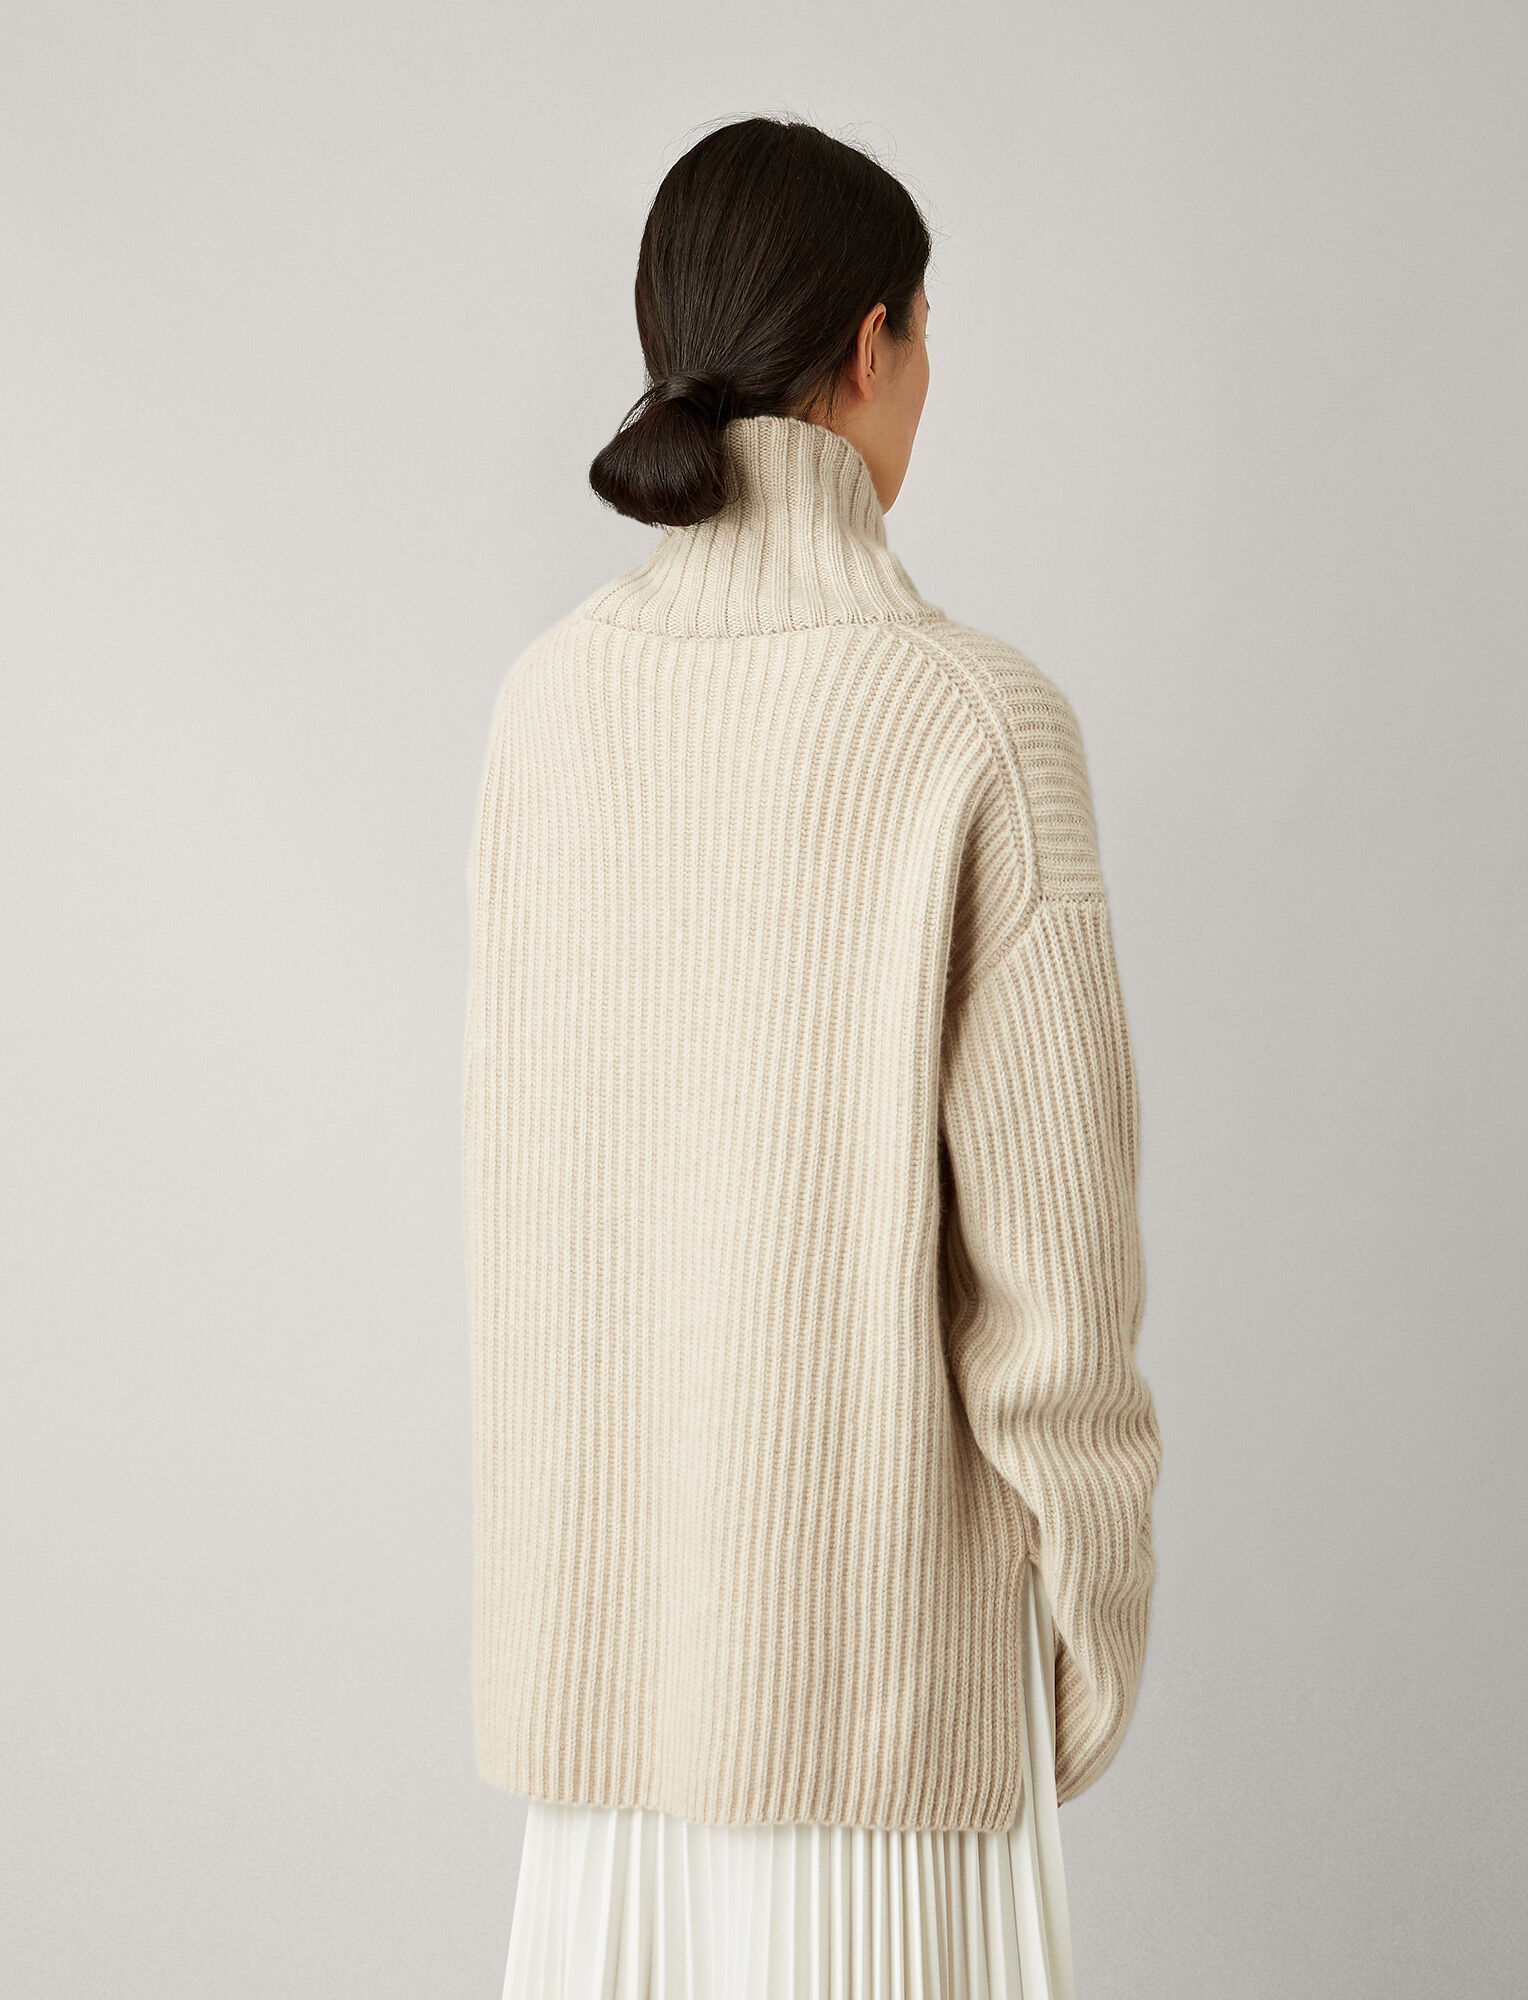 Joseph, High Neck Cashmere Luxe Knit, in MASTIC